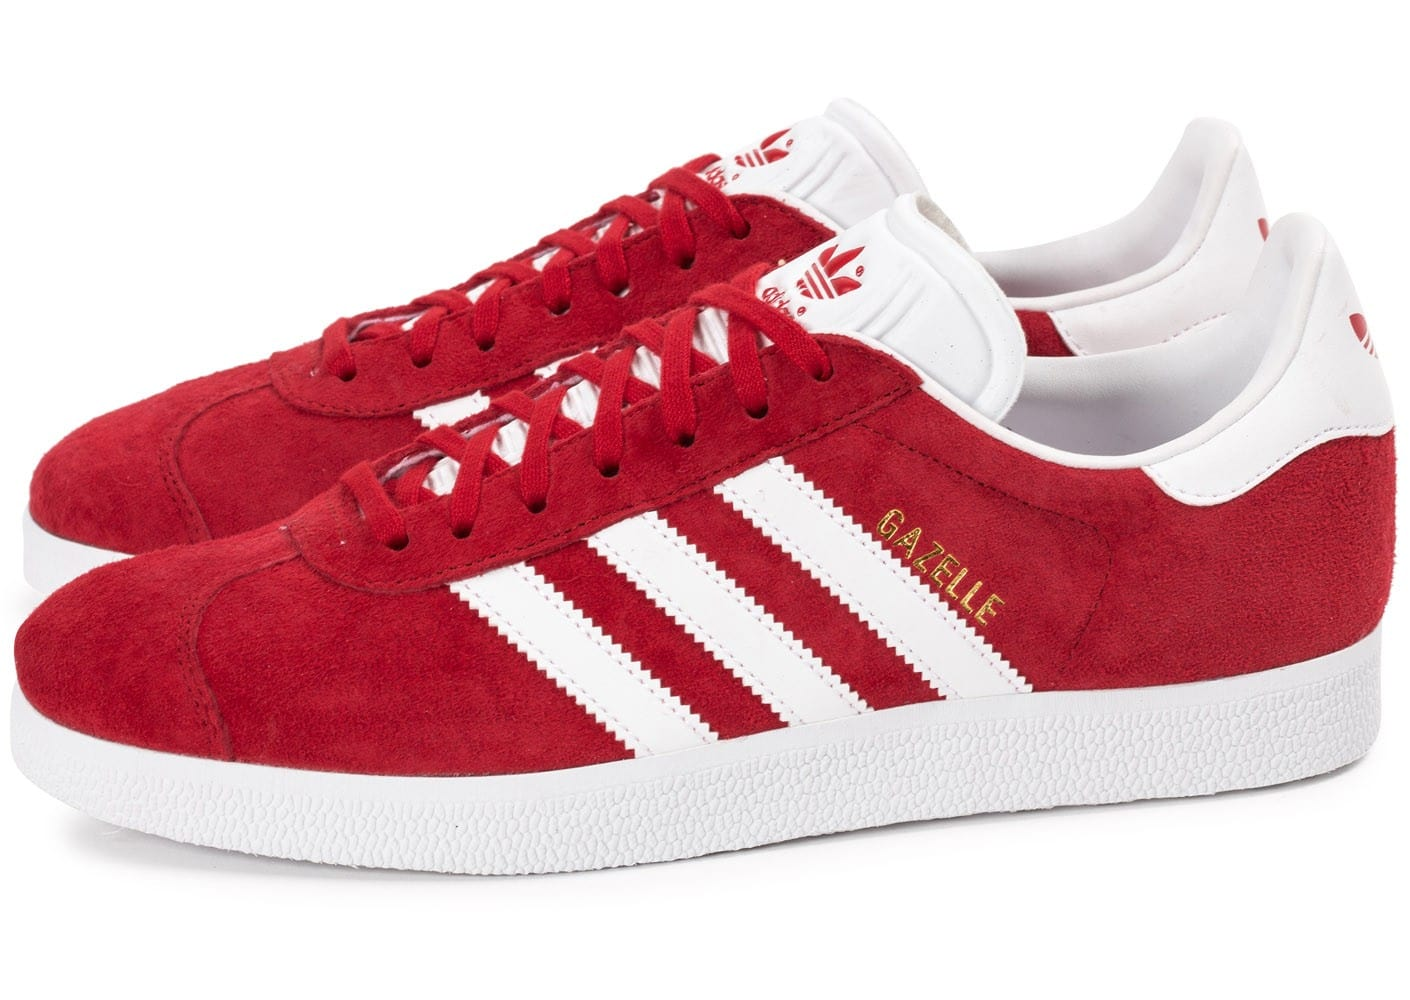 adidas Originals Gazelle Rouge - Chaussures Baskets basses Homme